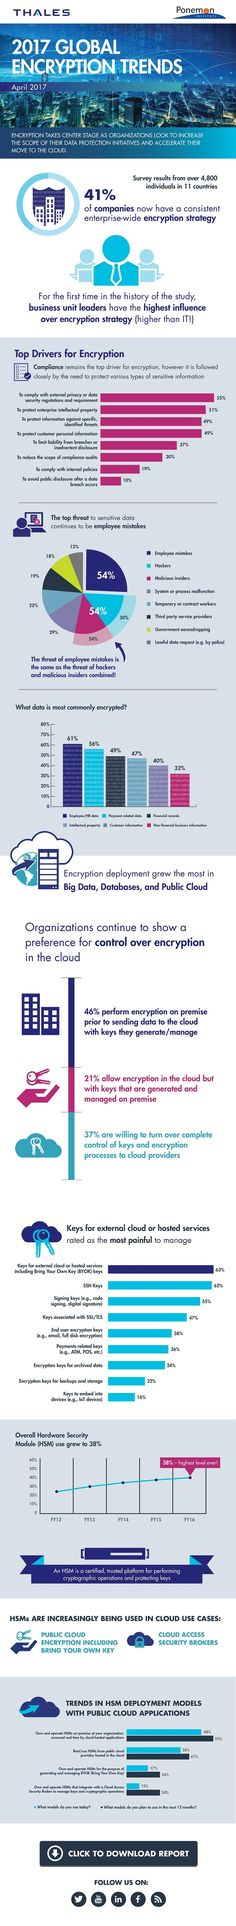 Cloud adoption and escalating threats accelerate encryption deployment » An awesome infographic to explain the latest state of charity cyber security via Charity Digital News